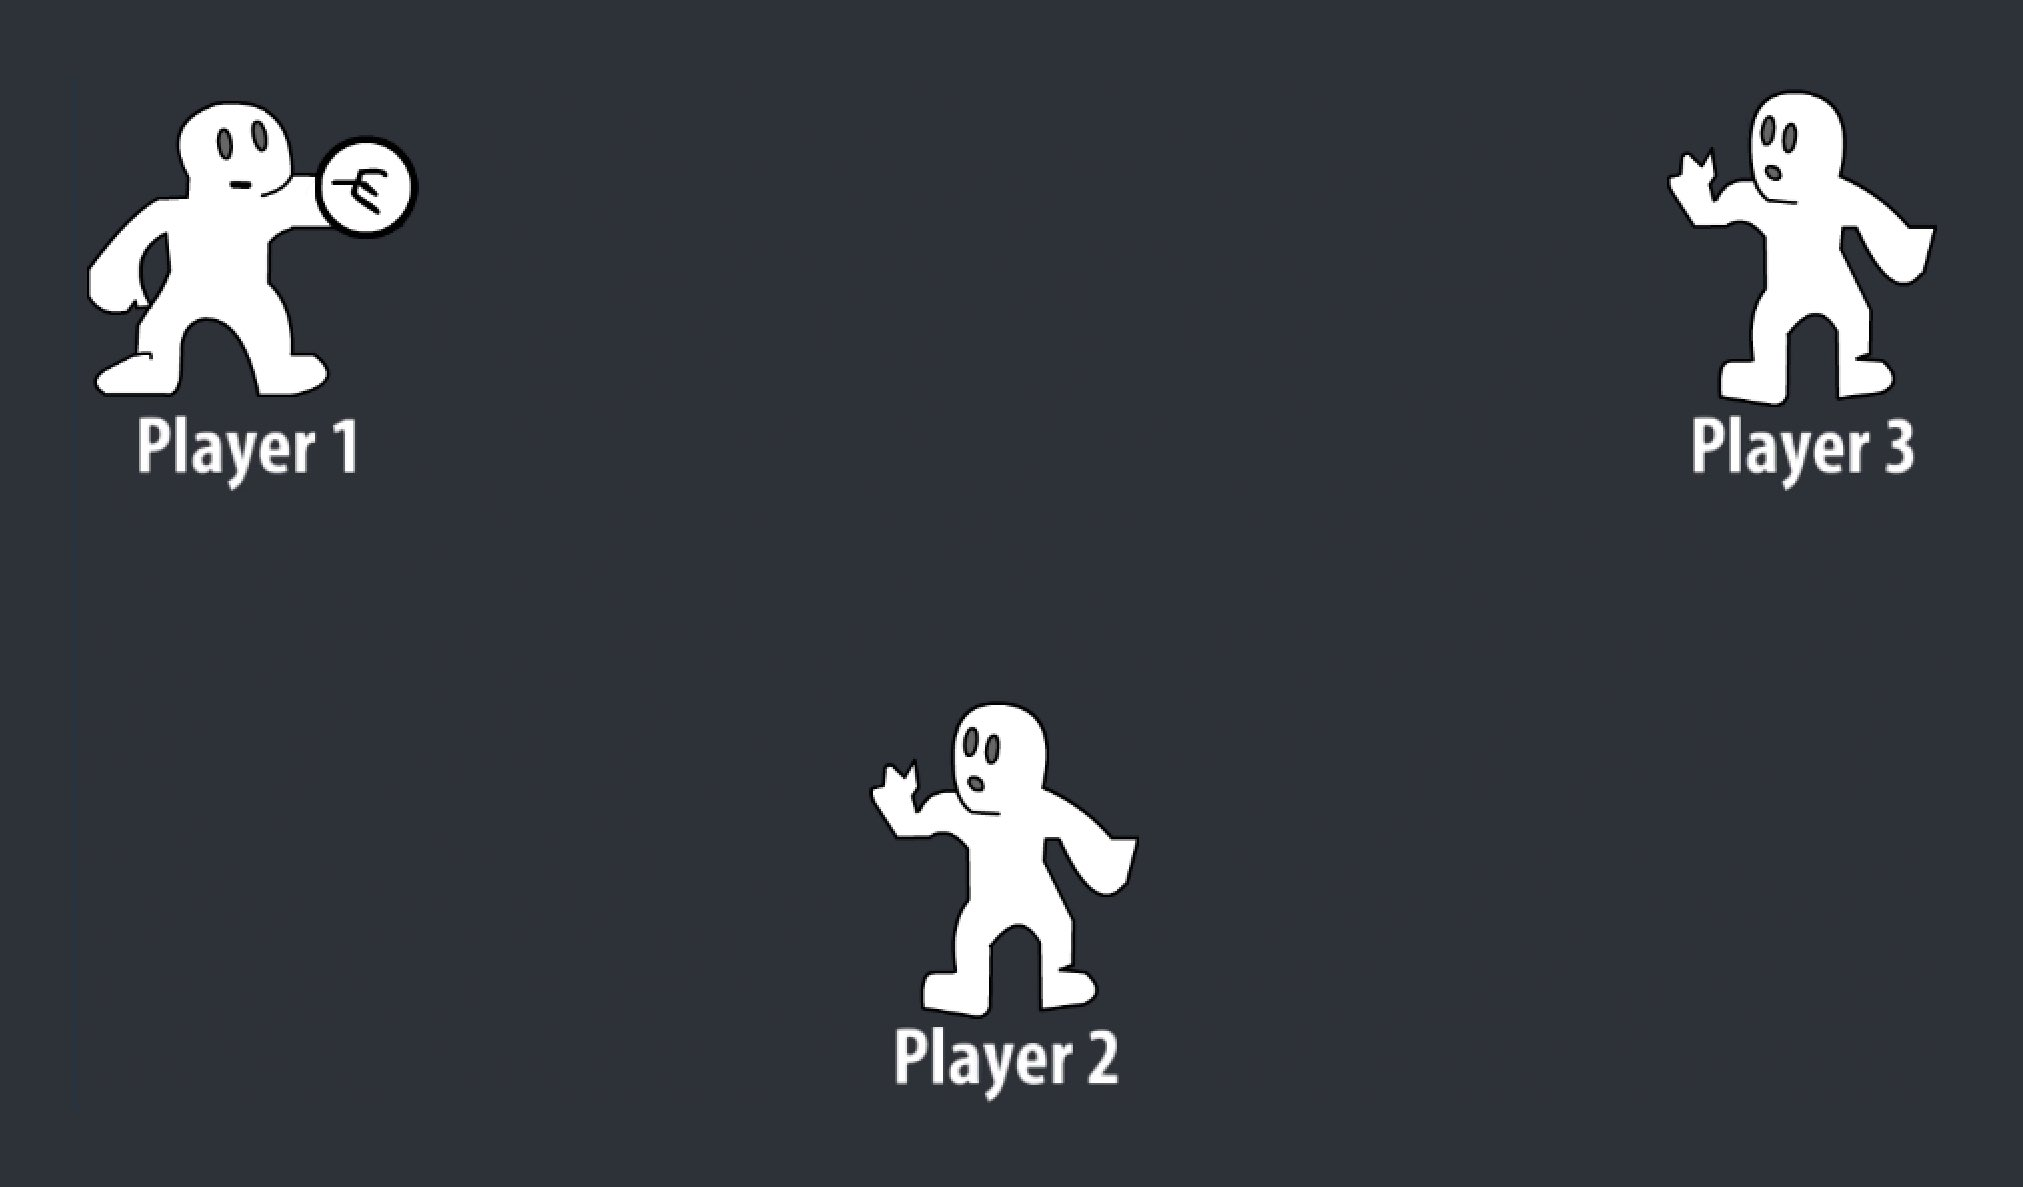 From the cyberball game, three outlined figures playing catch. Player 1 is mid-throw to Player 3.